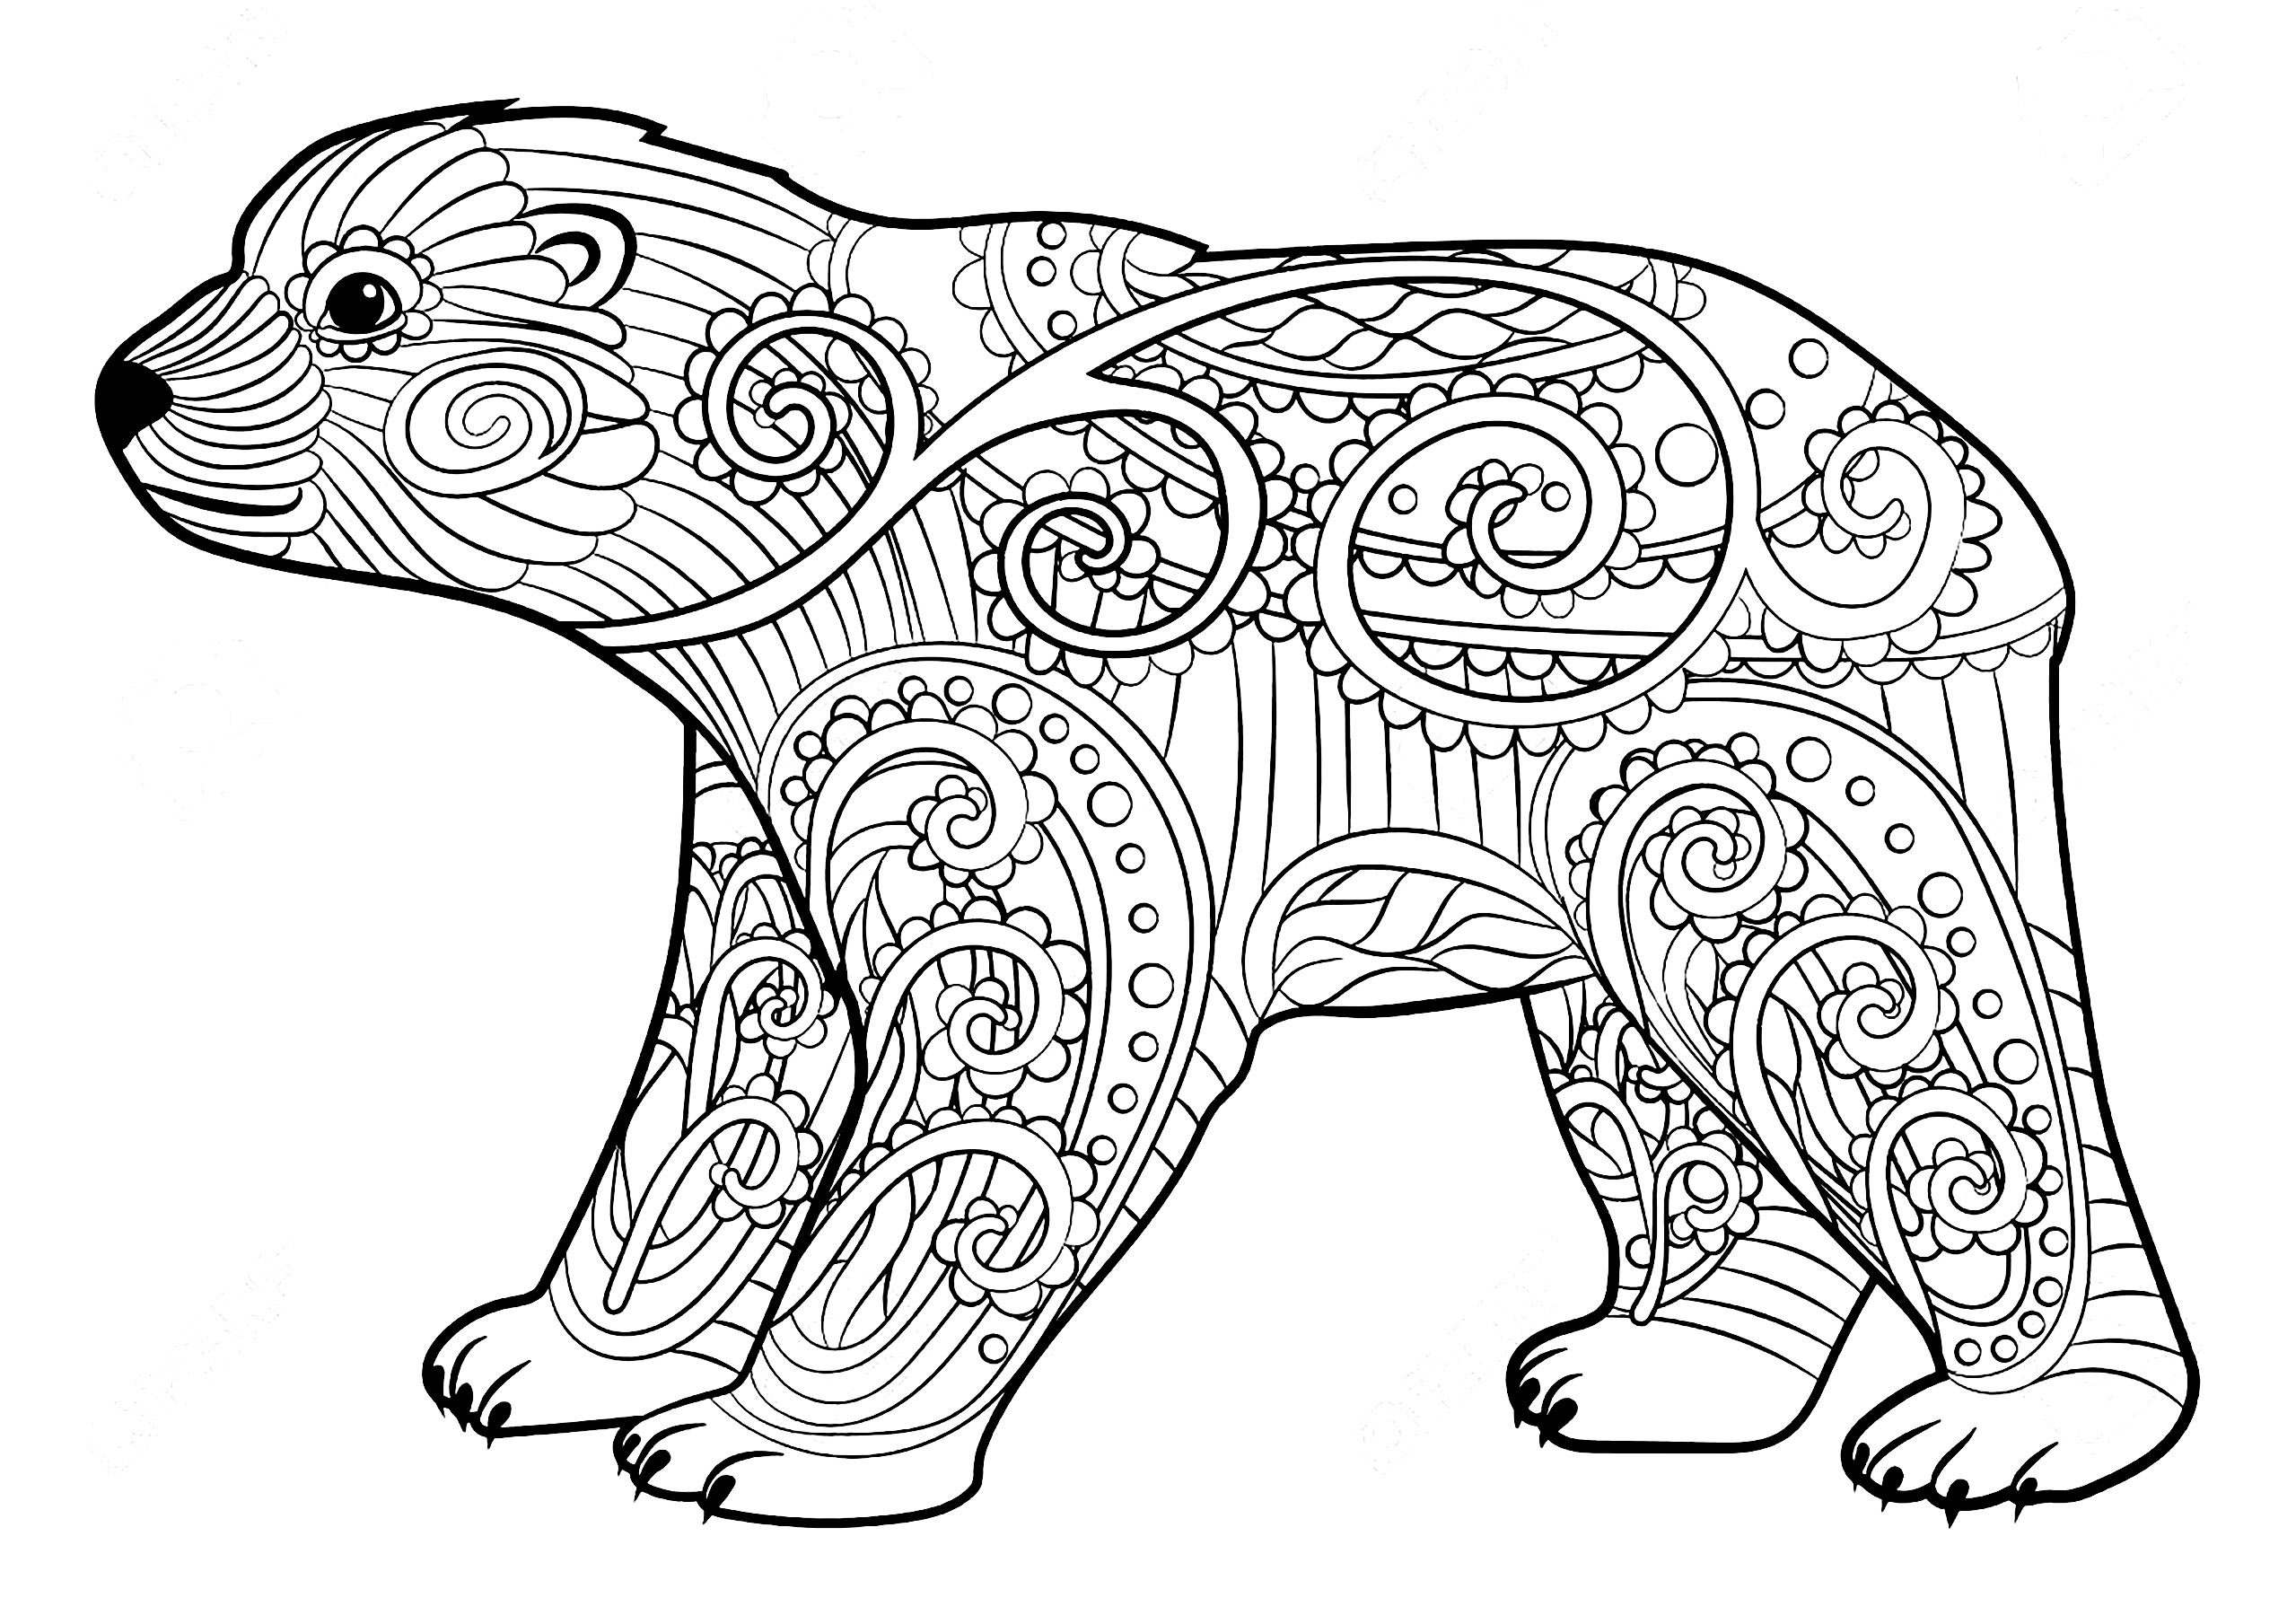 coloring pages of bears grizzly bear coloring pages getcoloringpagescom bears of coloring pages